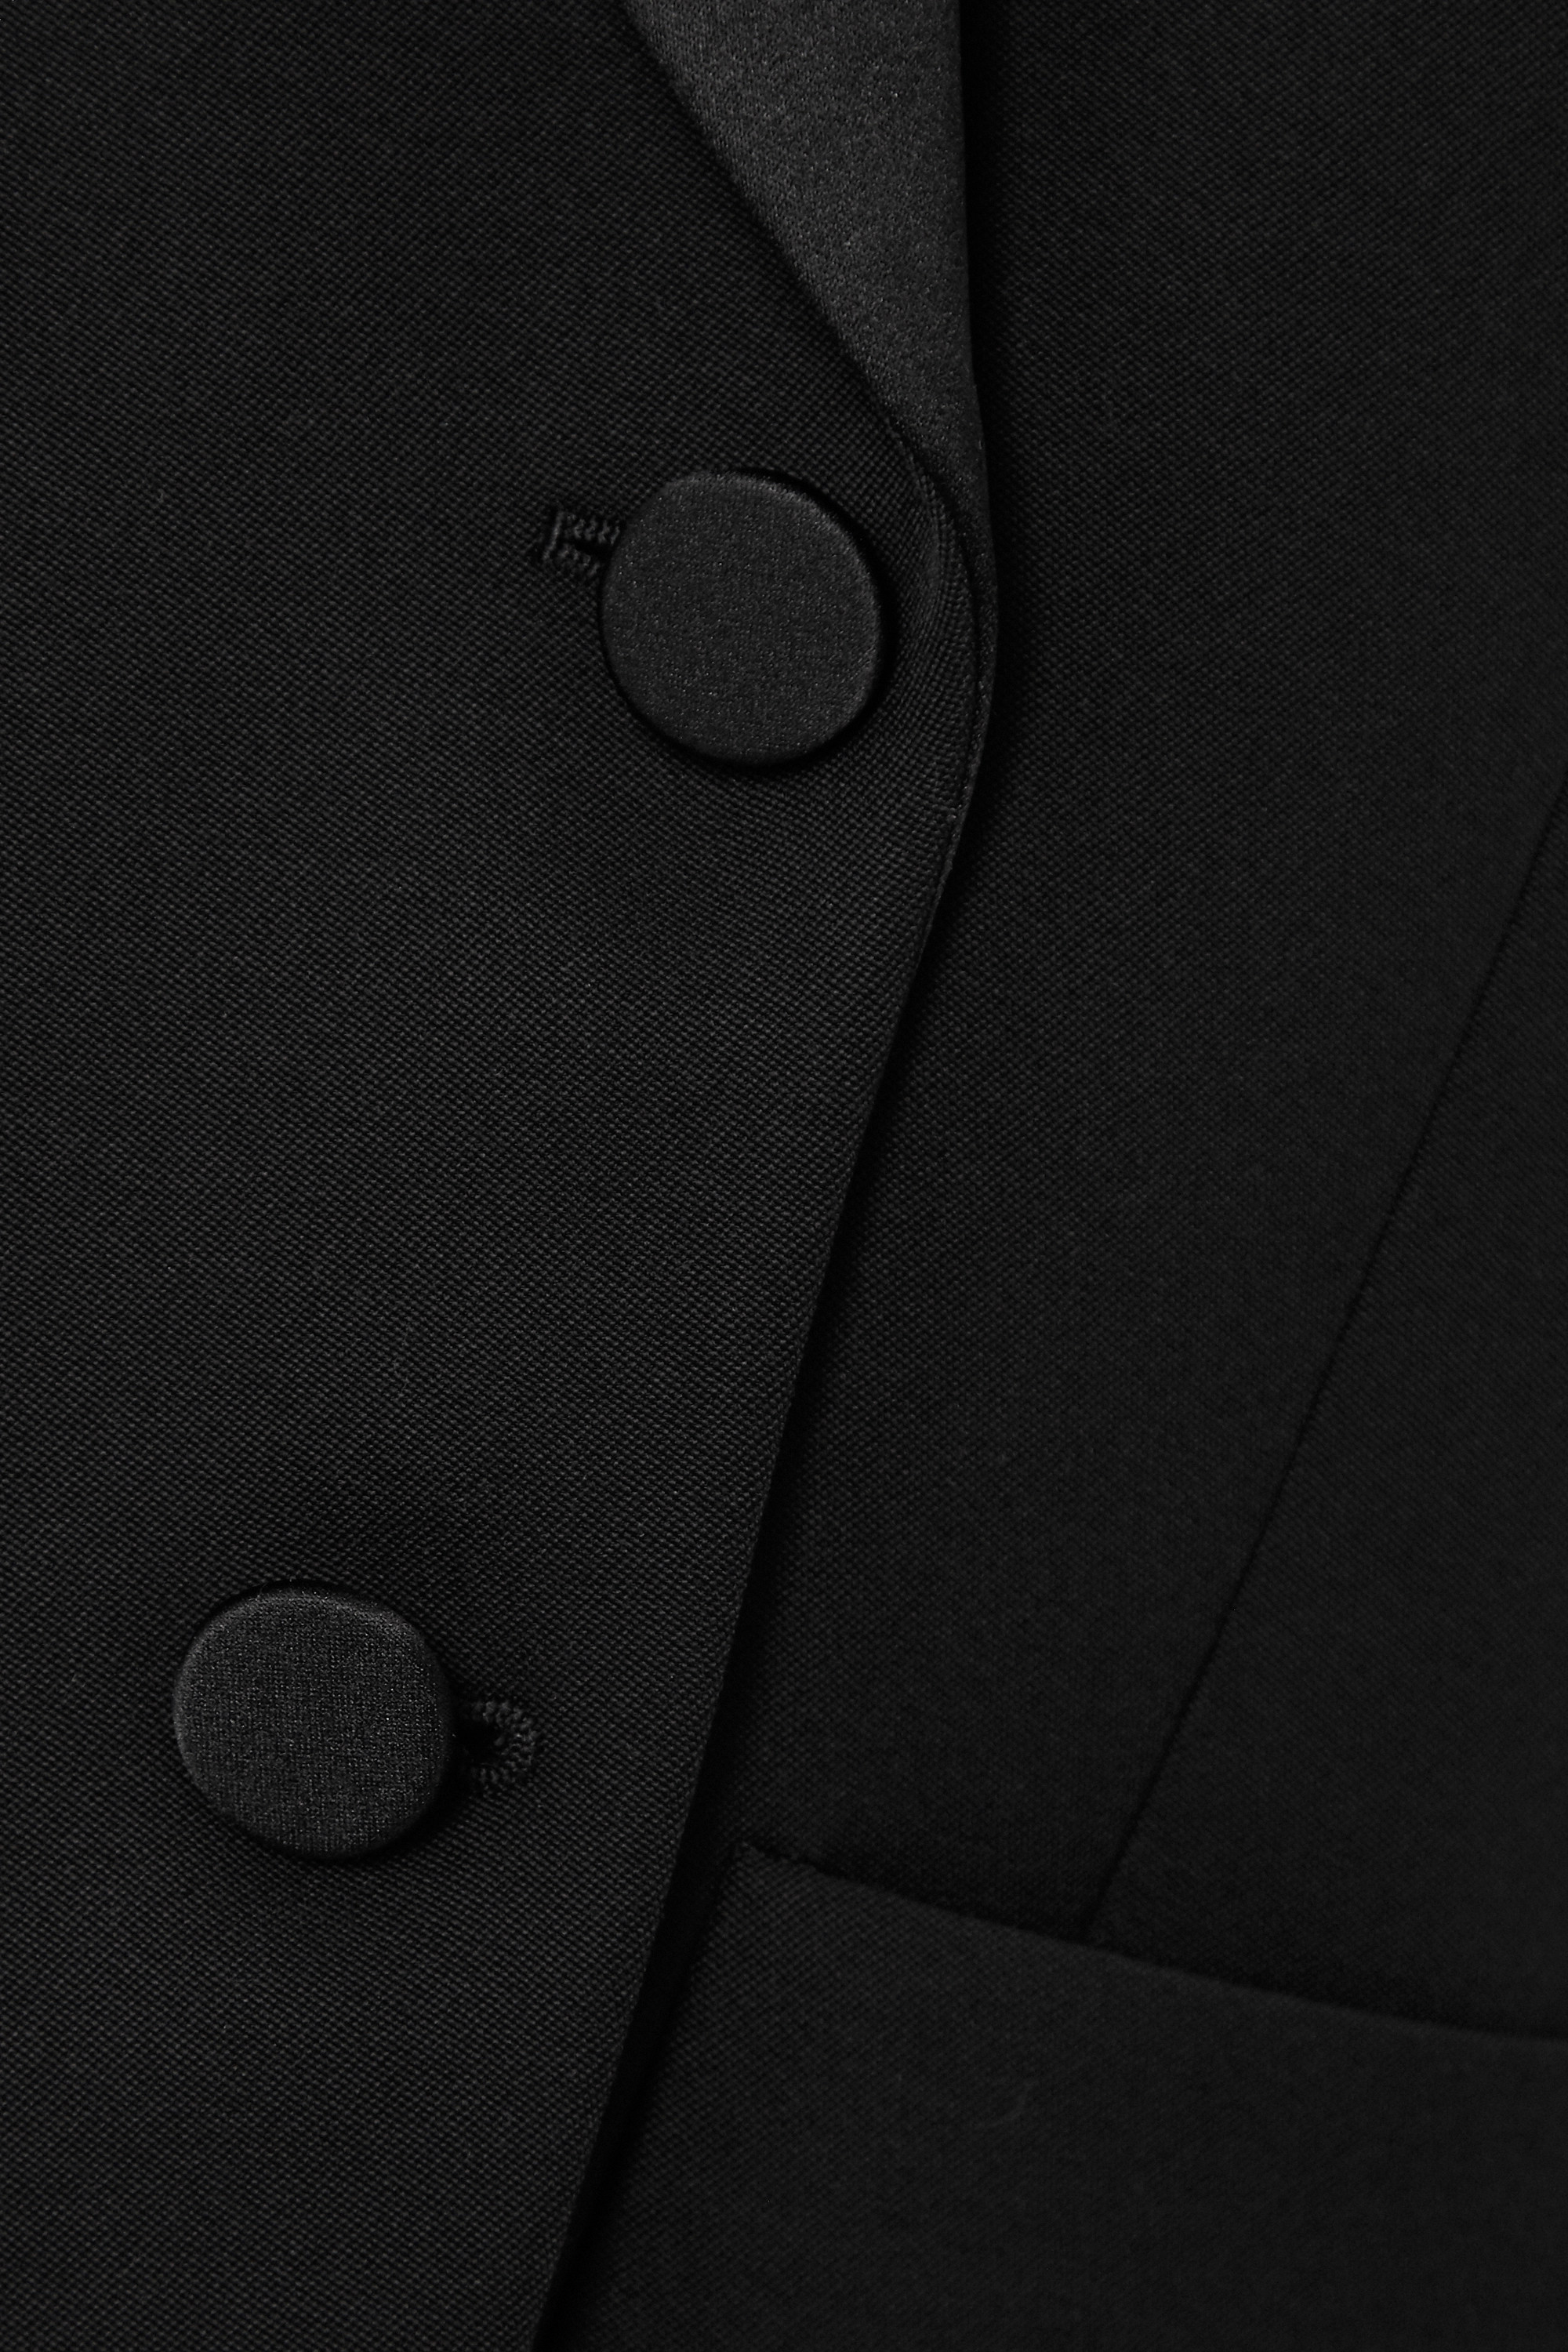 SAINT LAURENT Double-breasted satin-trimmed wool-twill blazer